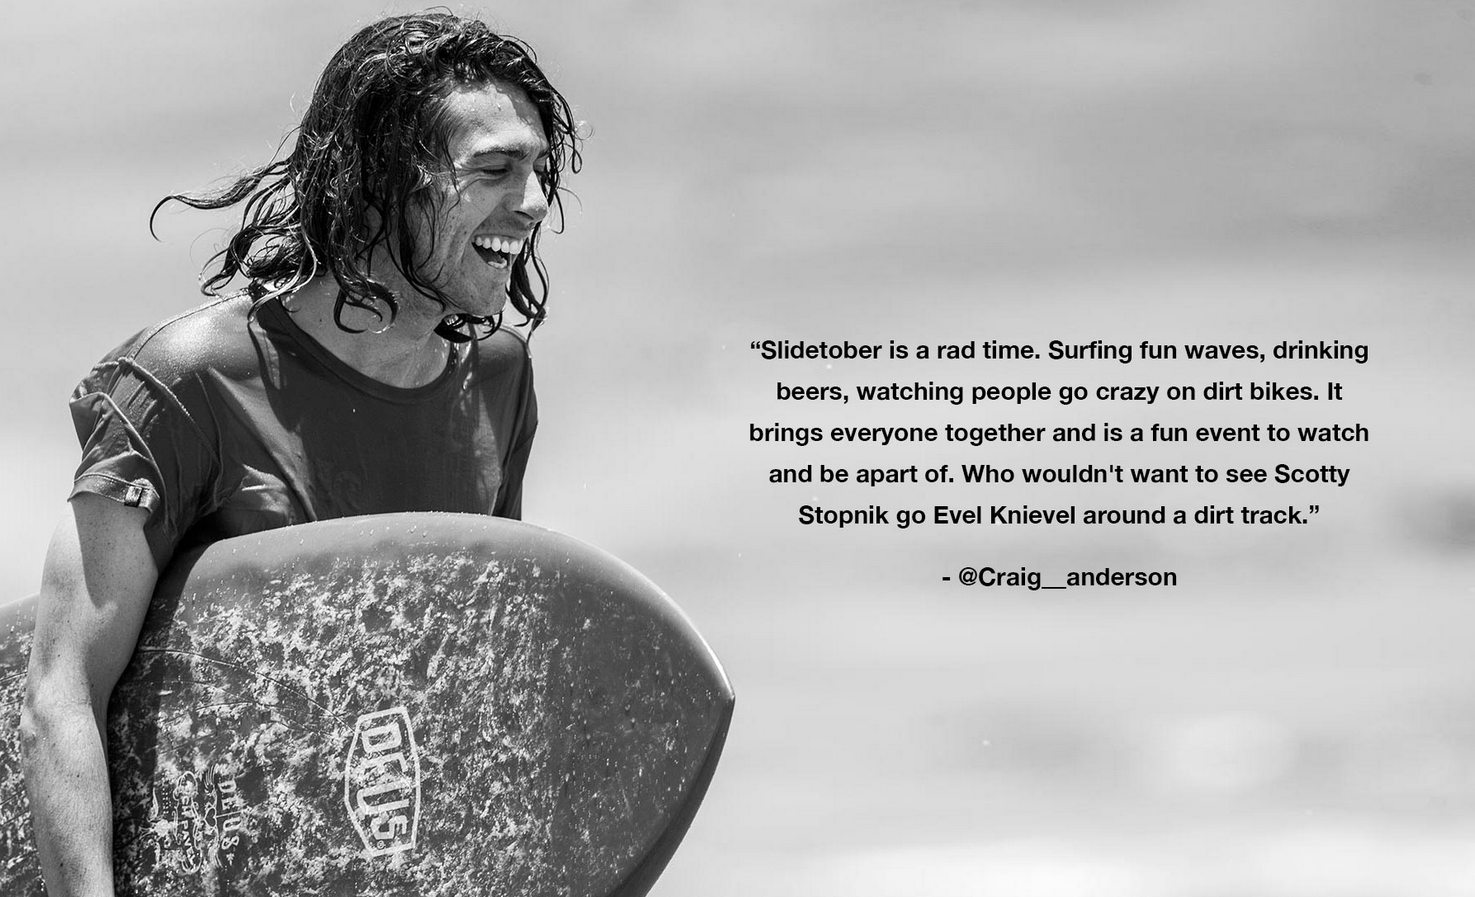 Craig Anderson Slidefest testimonial. Courtesy Electric.